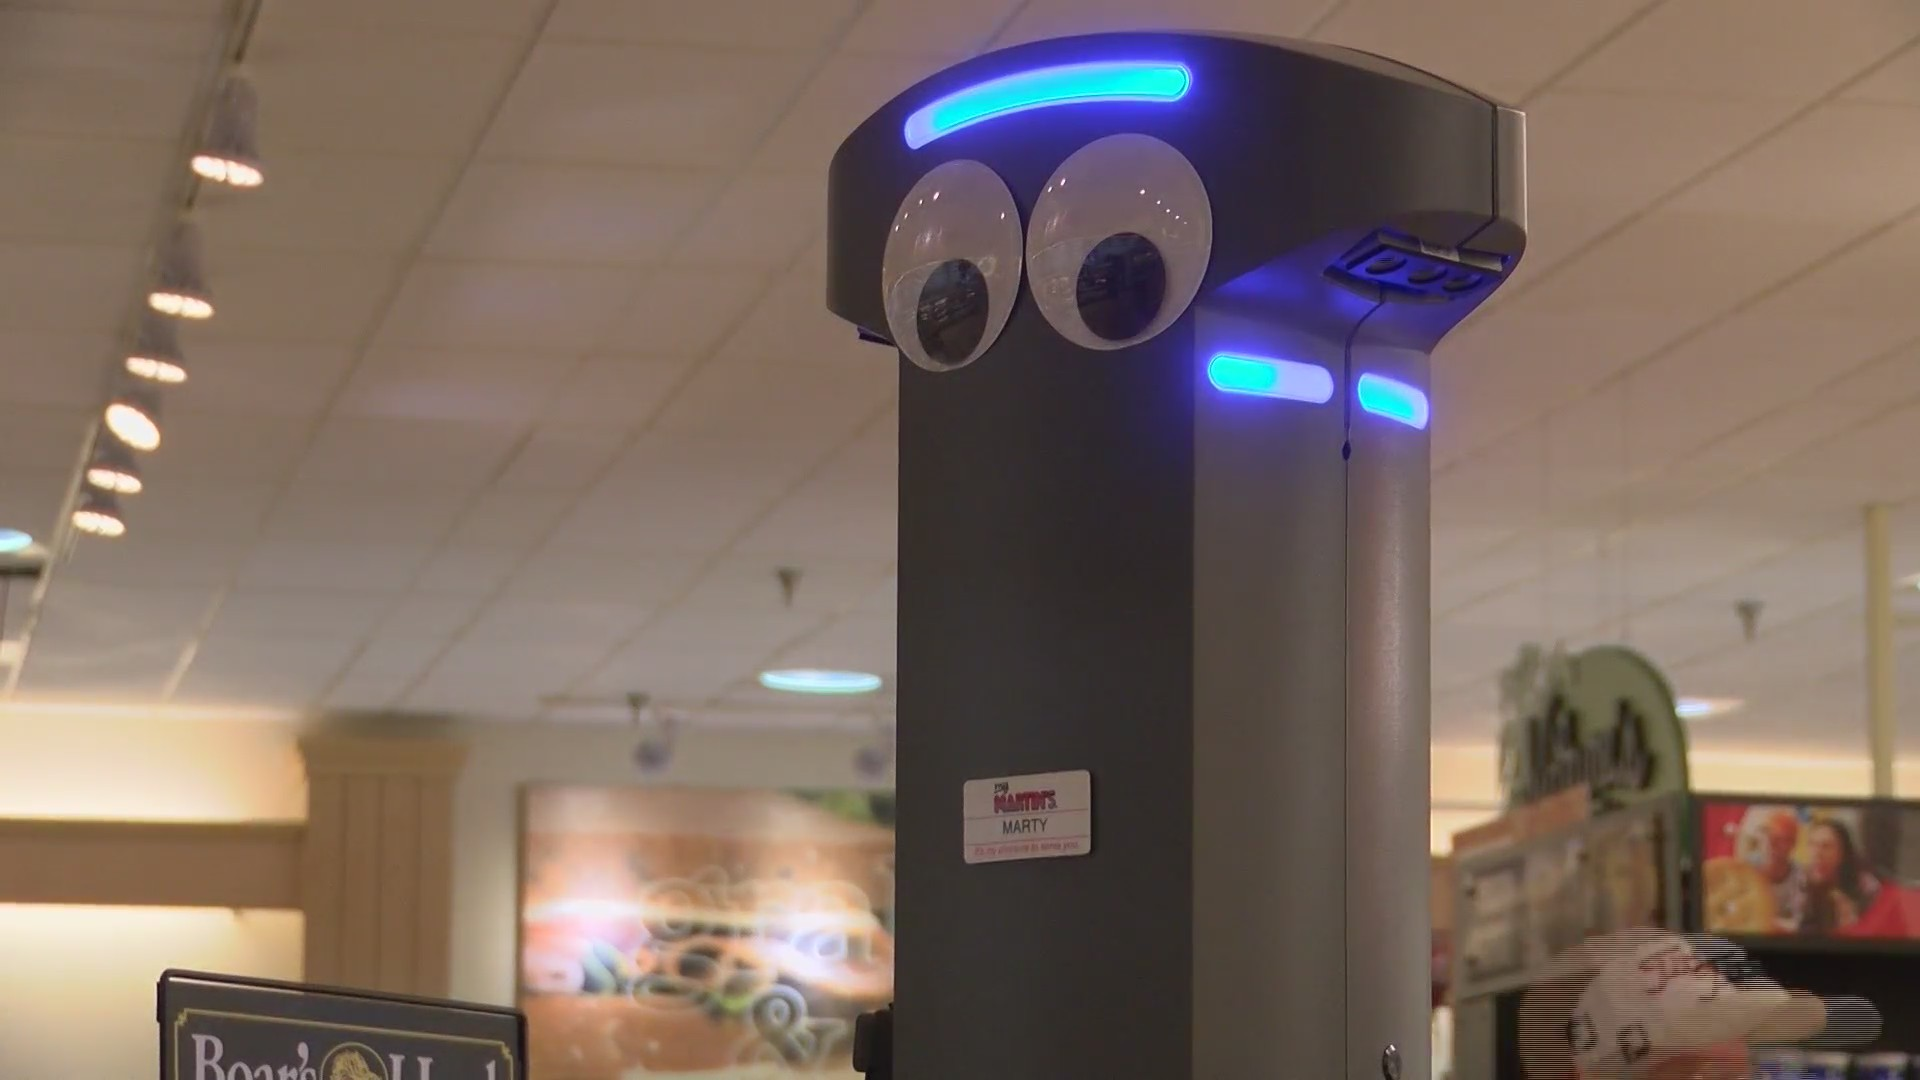 Hagerstown welcomes newest citizen -- Marty, the robot